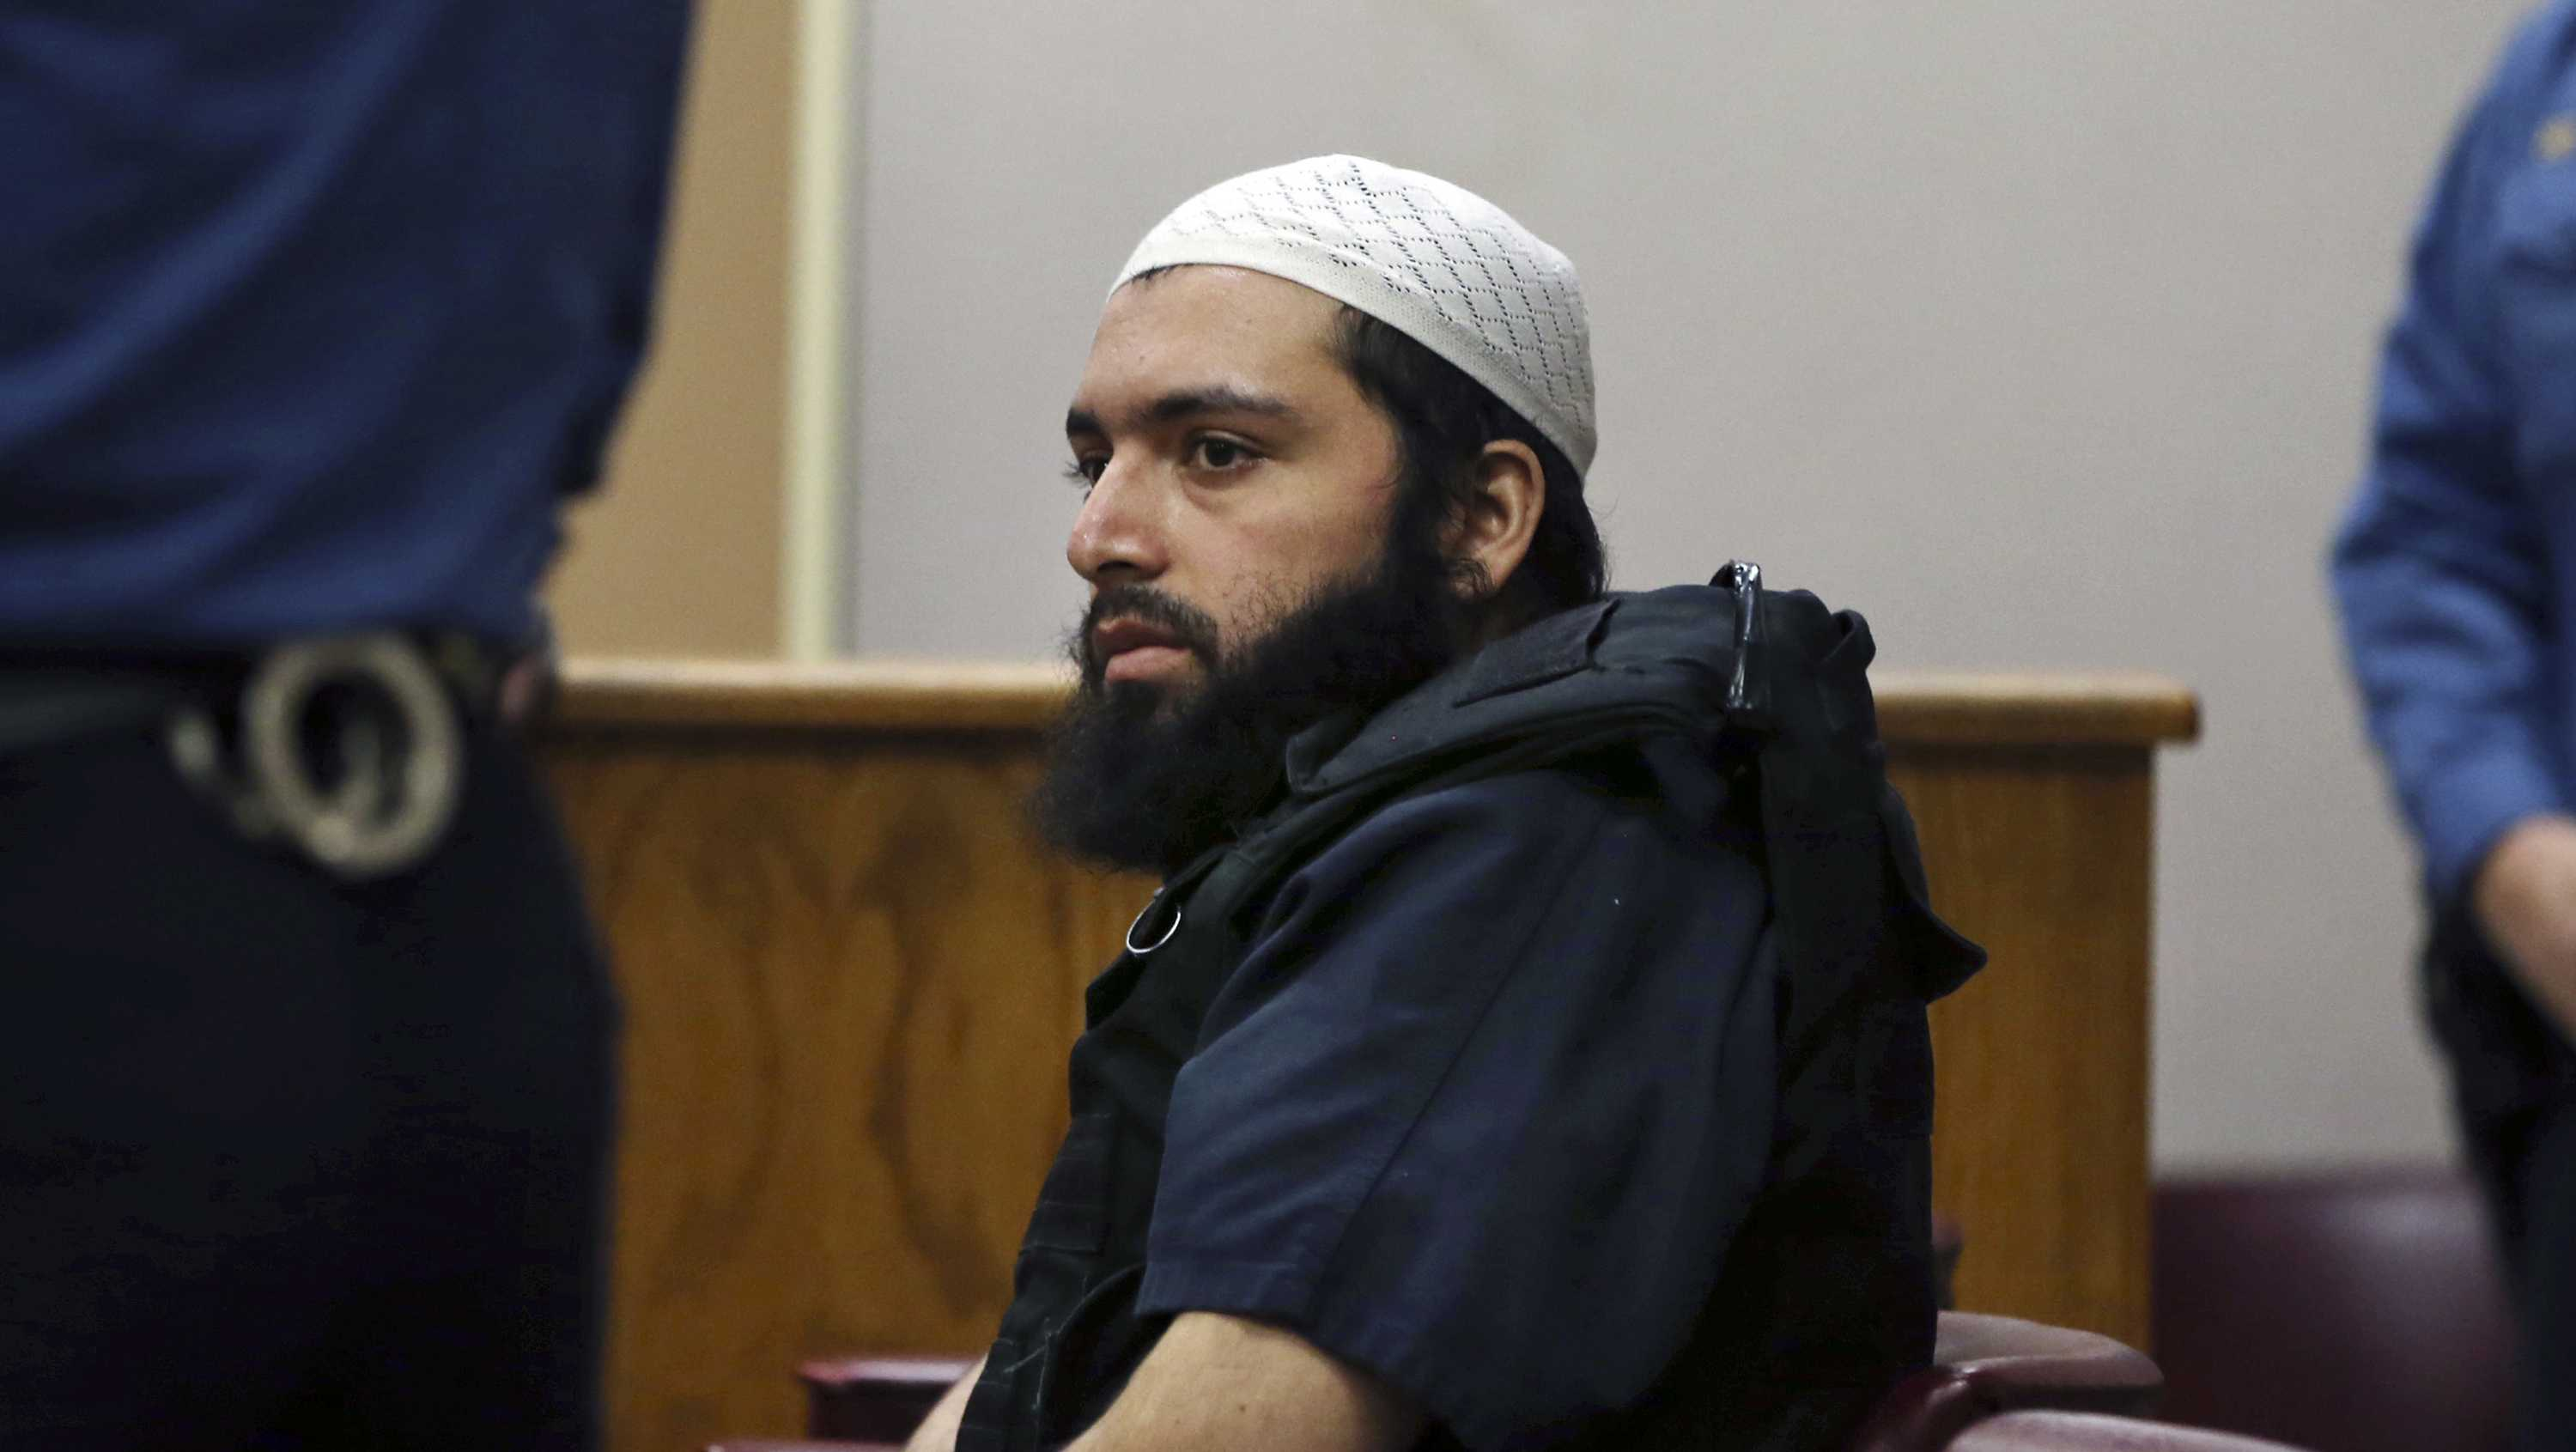 In this Dec. 20, 2016 file photo, Ahmad Khan Rahimi, the man accused of setting off bombs in New Jersey and New York's Chelsea neighborhood in September, sits in court in Elizabeth, N.J. Prosecutors are urging a judge to impose a life sentence on Rahimi. The government made its arguments in papers filed Tuesday, Jan. 16, 2018, in Manhattan federal court.